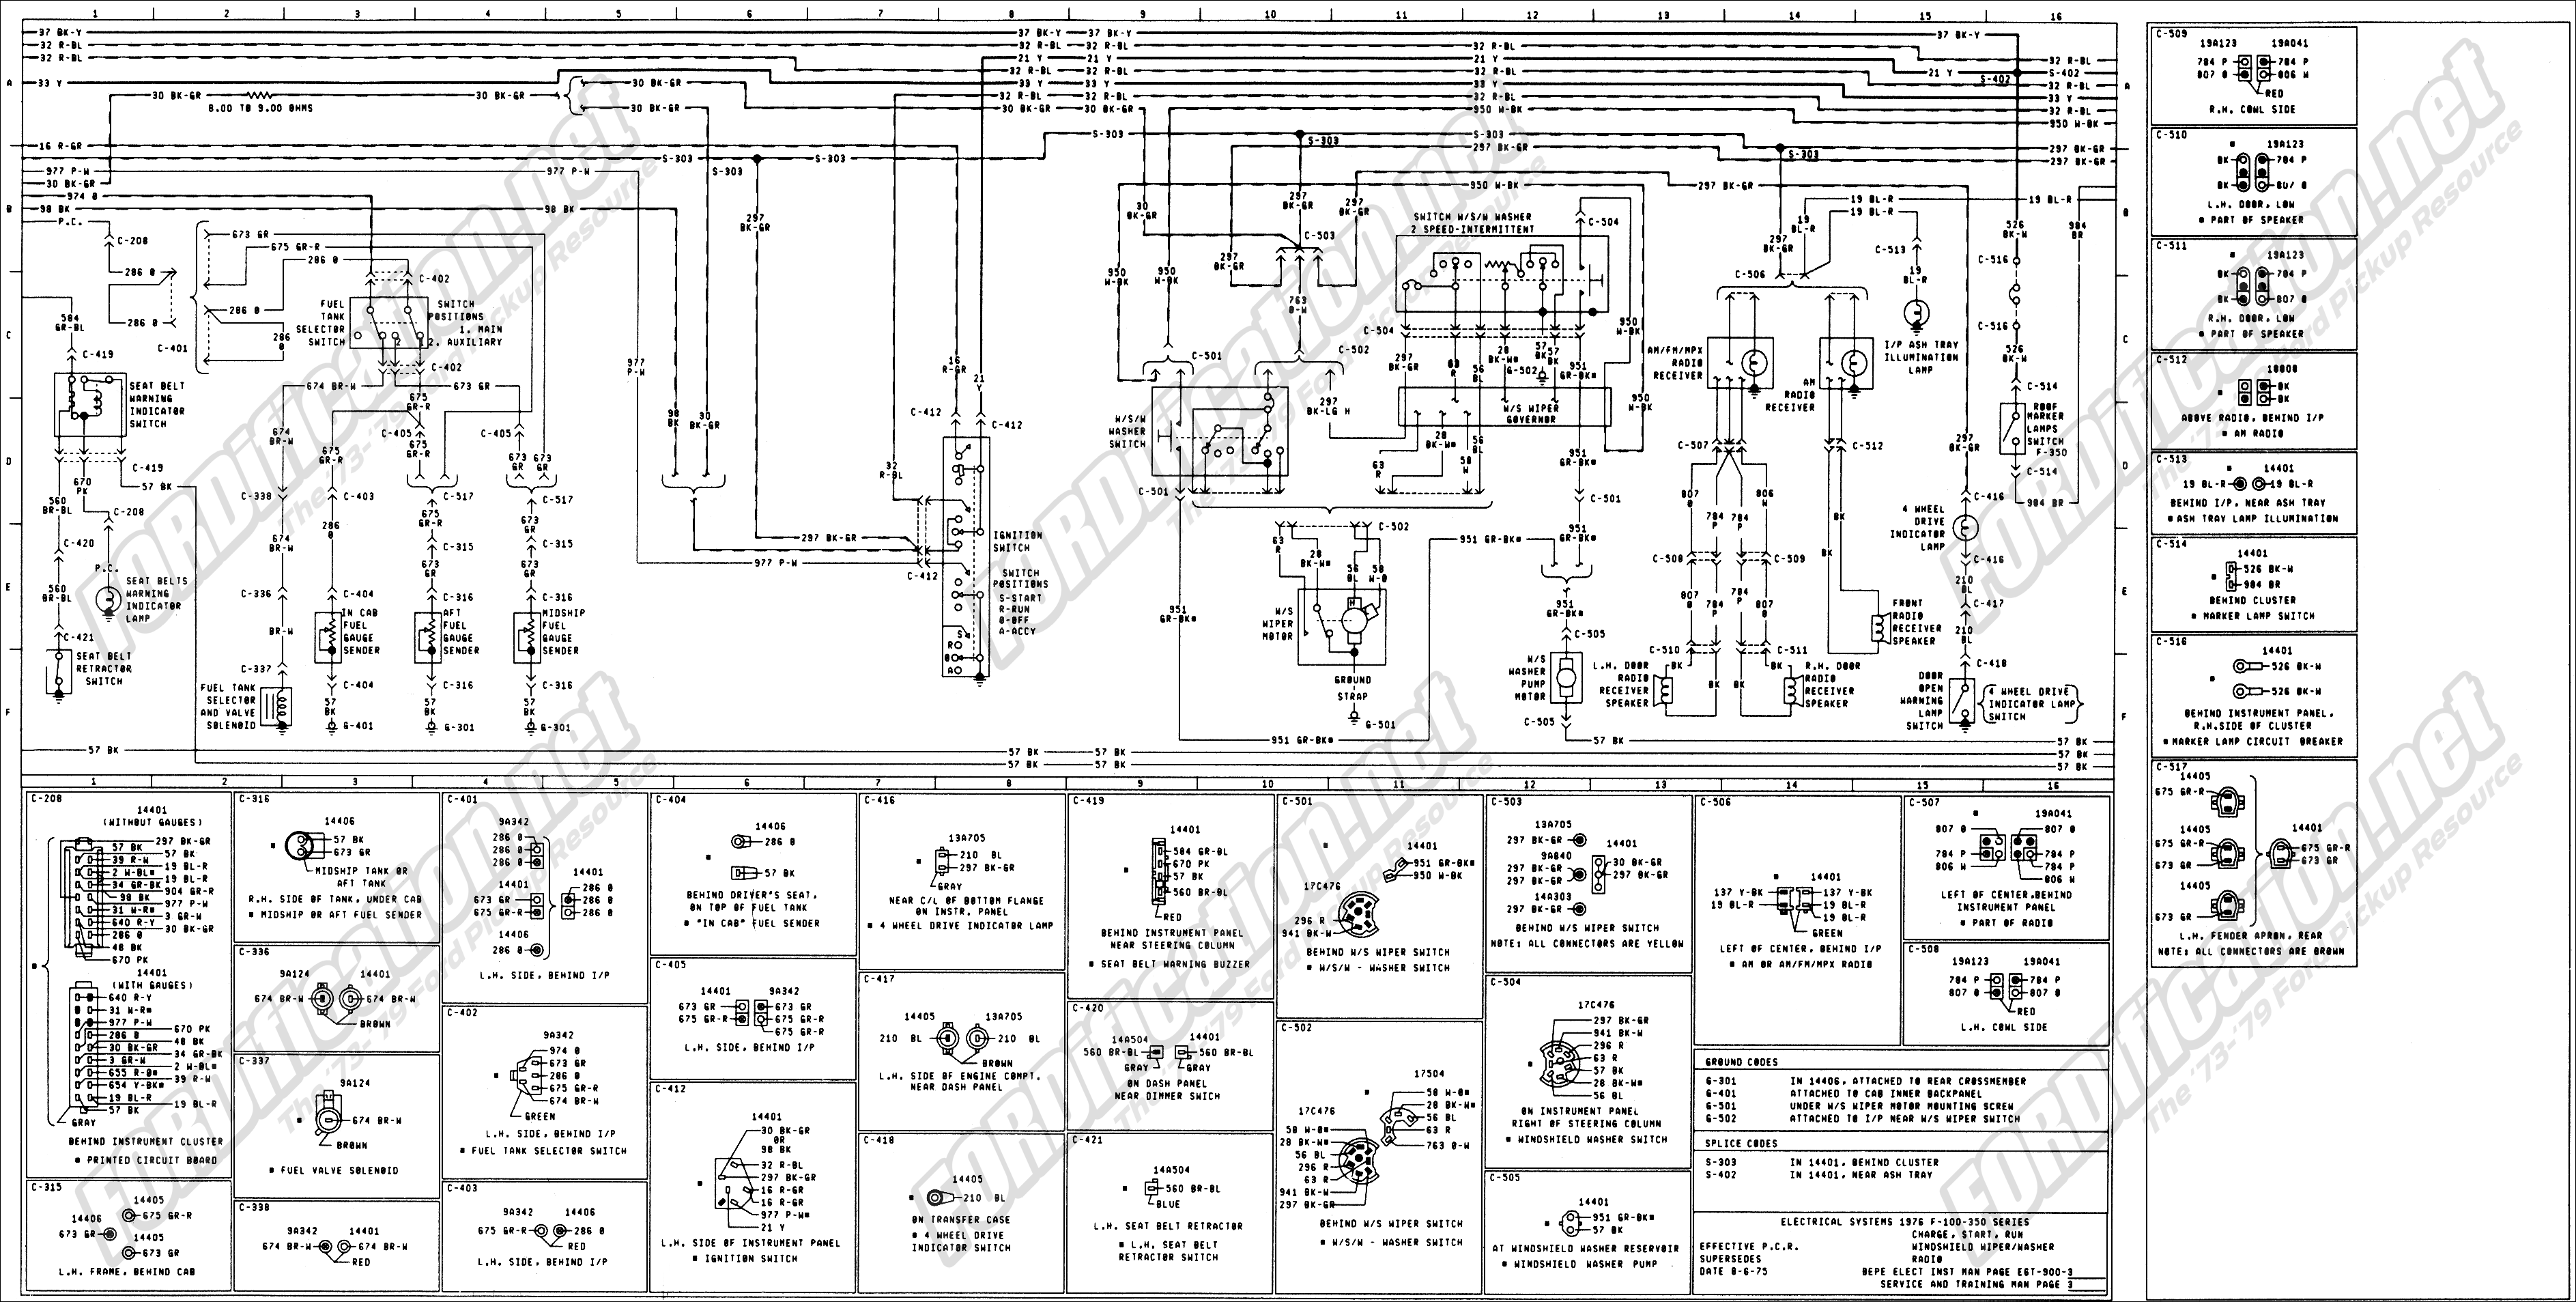 wiring_76master_3of9 1994 ford super duty wiring diagram wiring diagram simonand wiring diagrams for ford trucks at virtualis.co